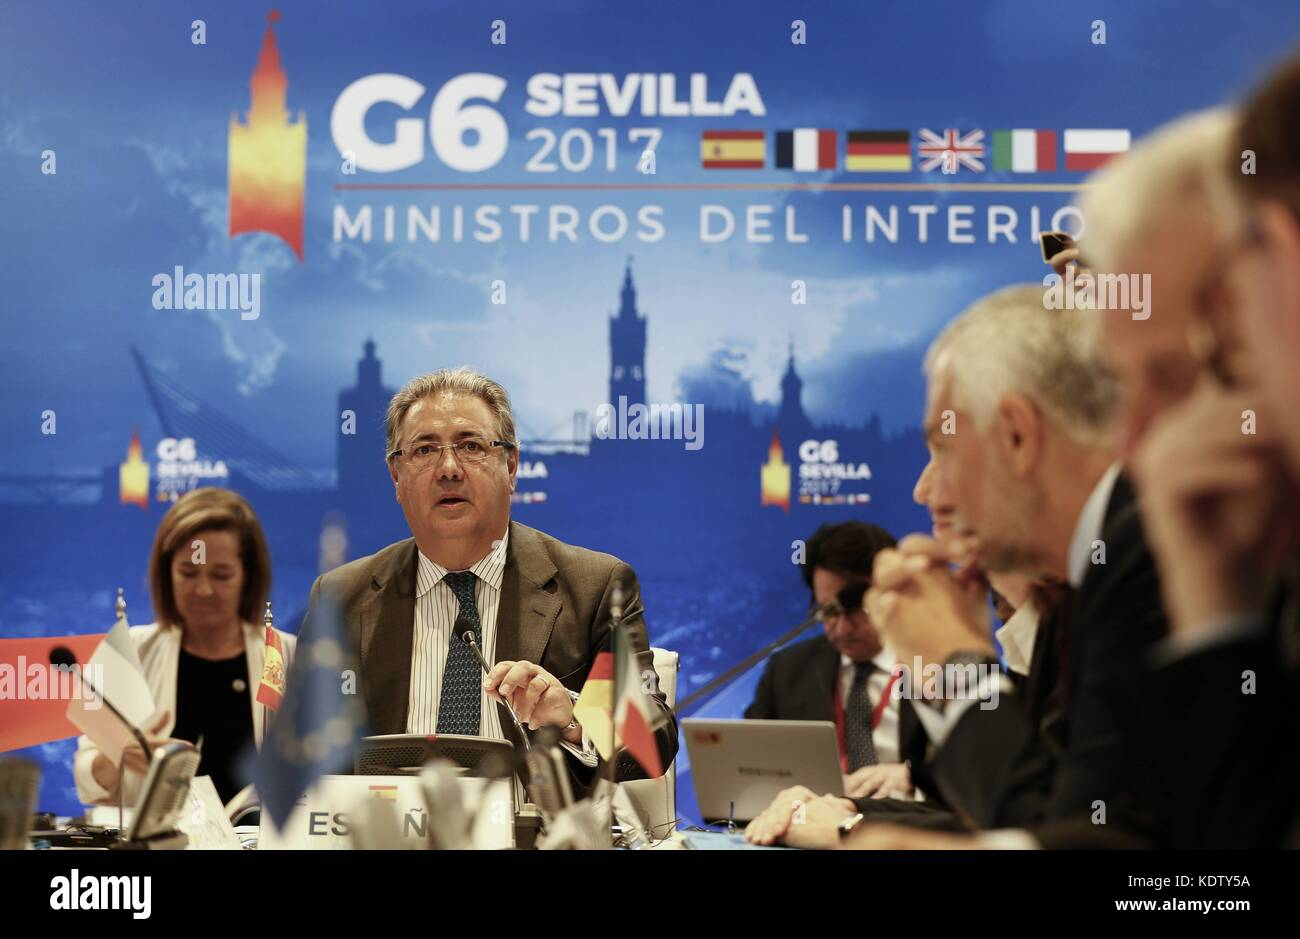 Seville, Spain. 16th Oct, 2017. Spanish Home Minister, Juan Ignacio Zoido (L), chairs a G6 Home Ministers meeting - Stock Image